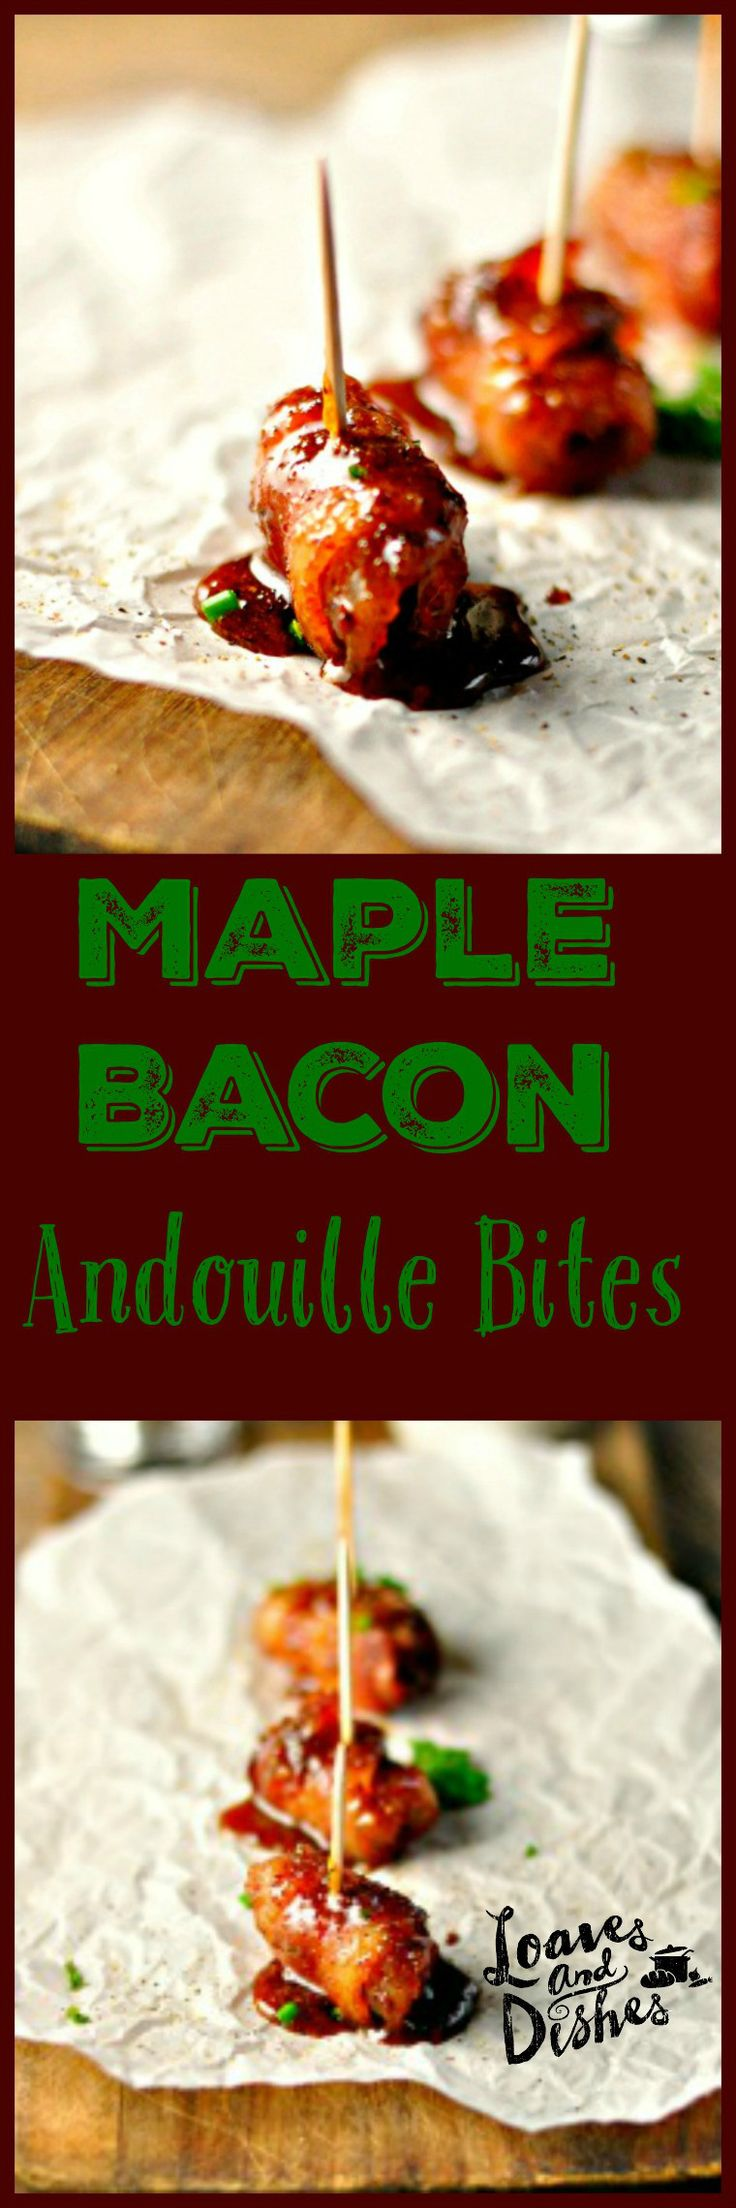 Need a perfect dish to take for the holiday's? Maple Bacon Andouille Bites are the TICKET! EASY! www.loavesanddishes.net